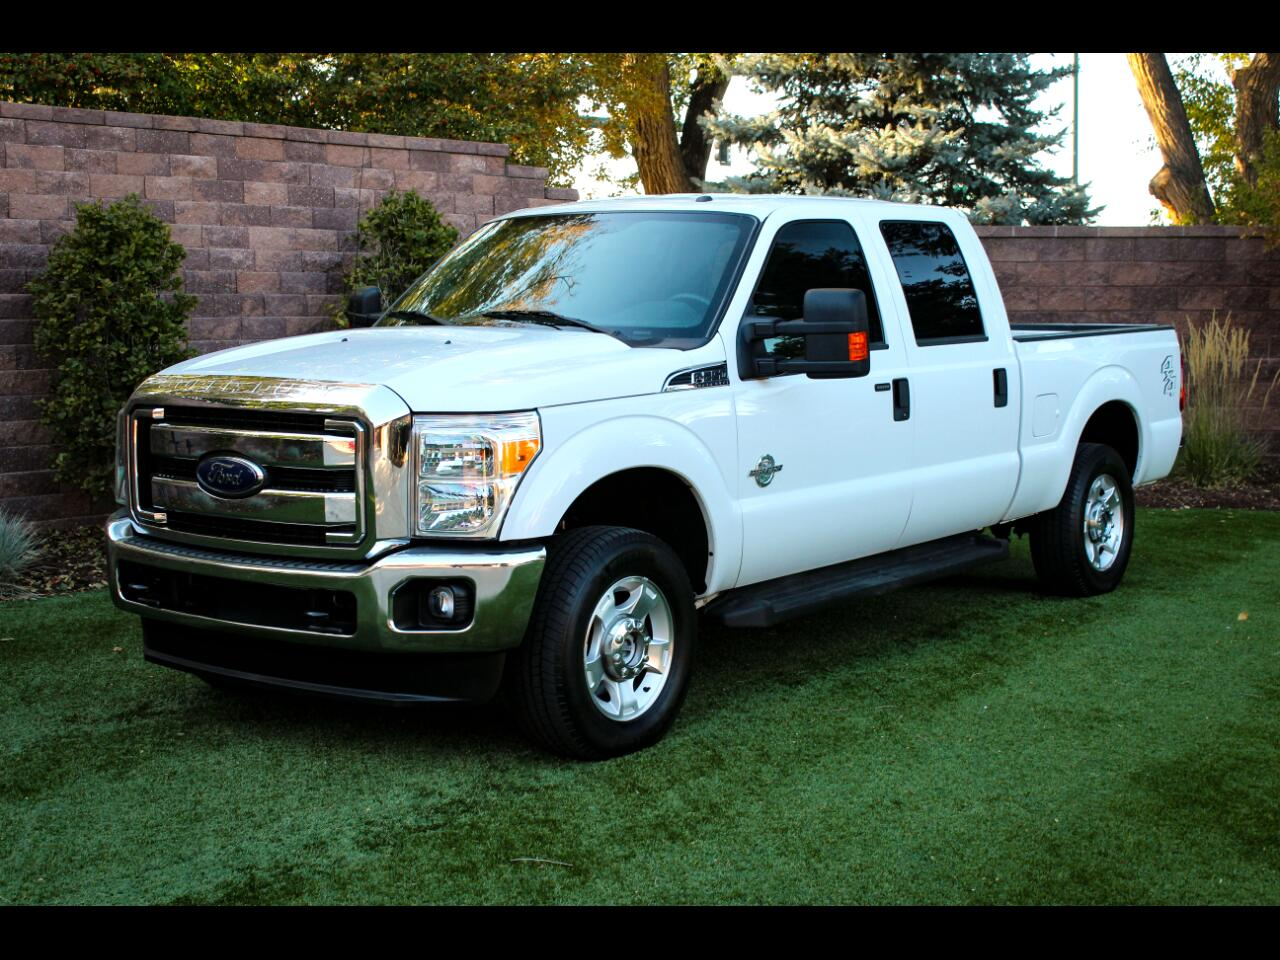 2015 Ford F-250 XLT Crew Cab Long Bed 4WD